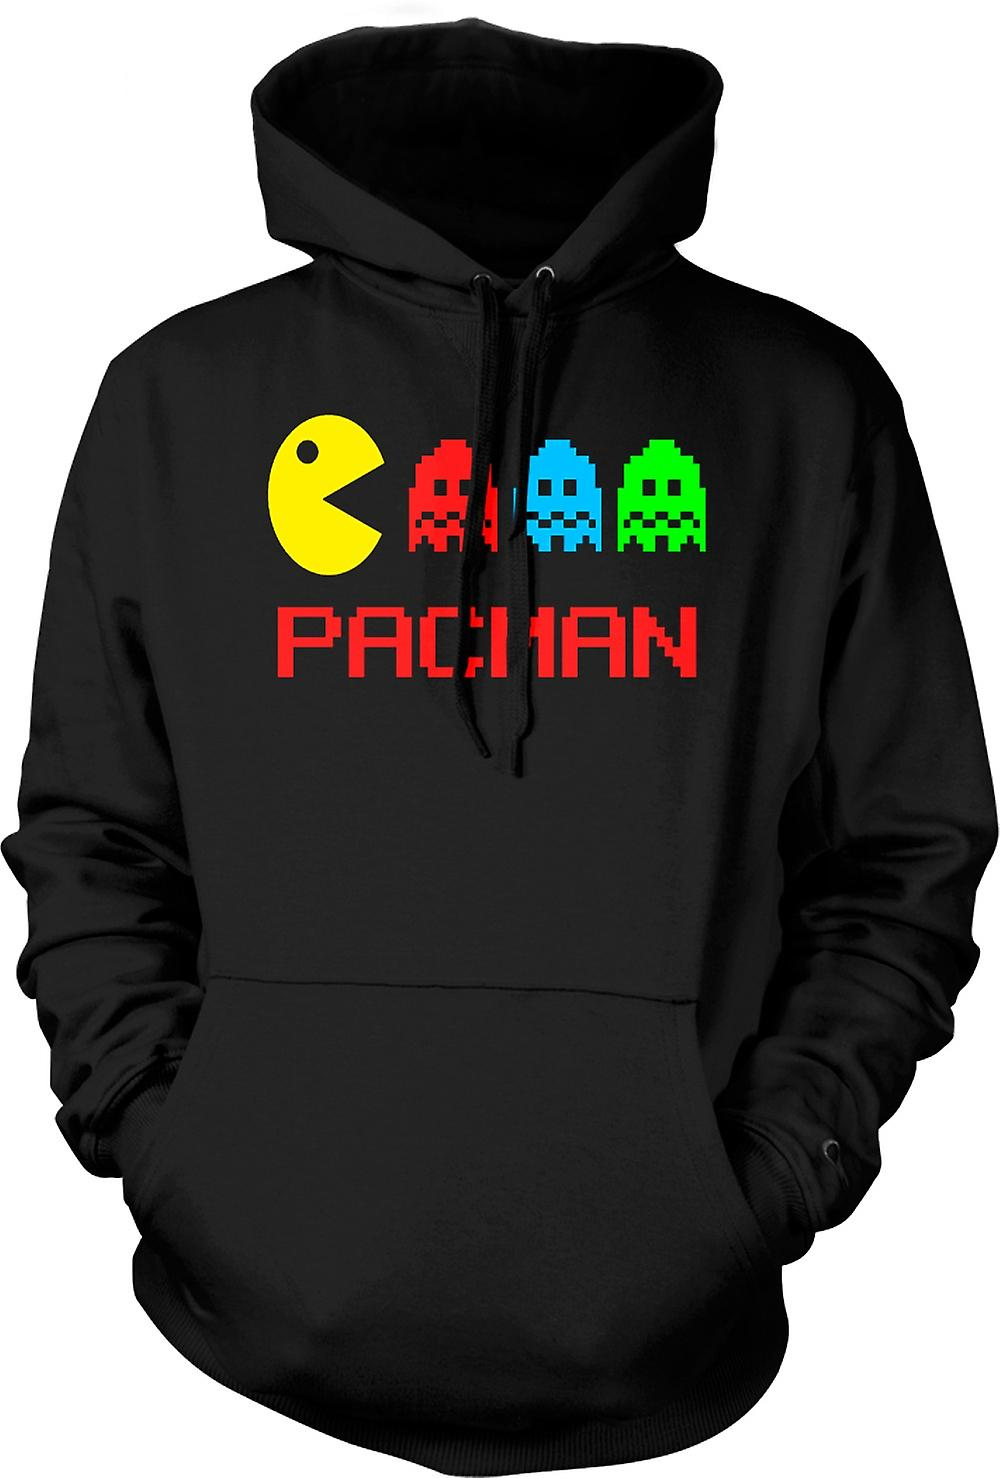 Mens Hoodie - Pacman - Retro - Old-School-Gamer